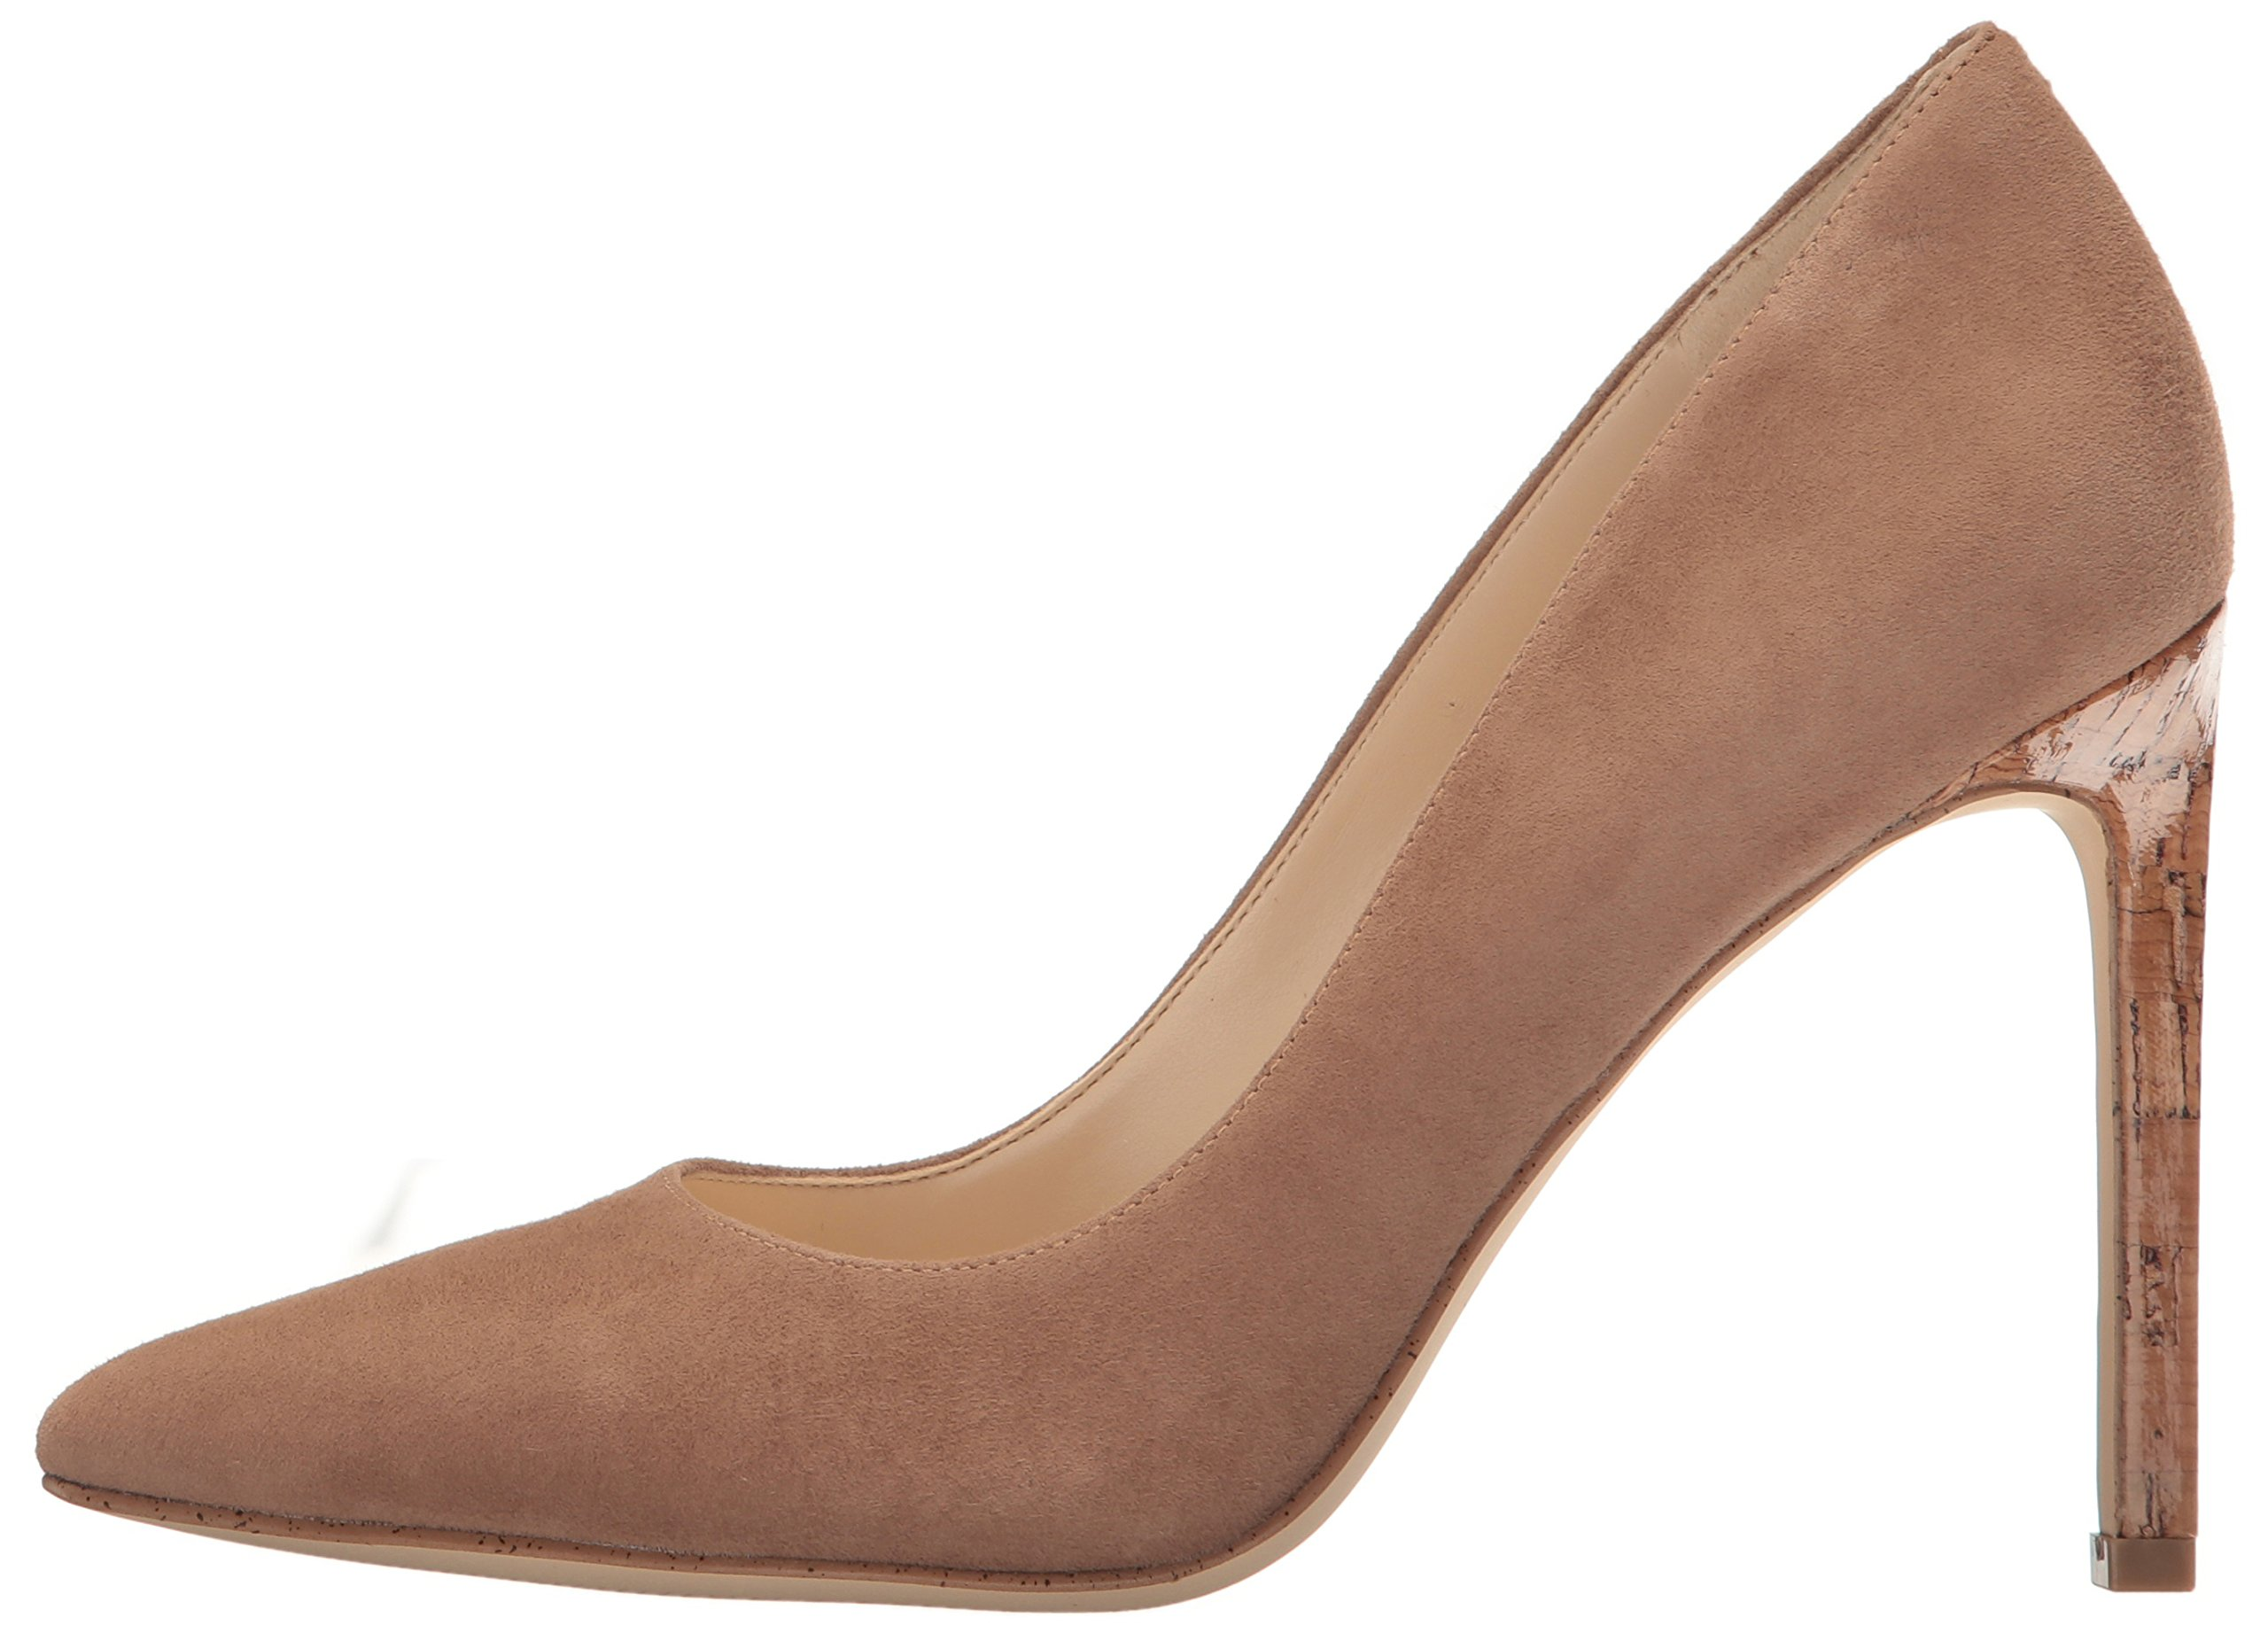 Nine West Women's Tatiana Suede Dress Pump, Dark Natural, 8 M US by Nine West (Image #5)